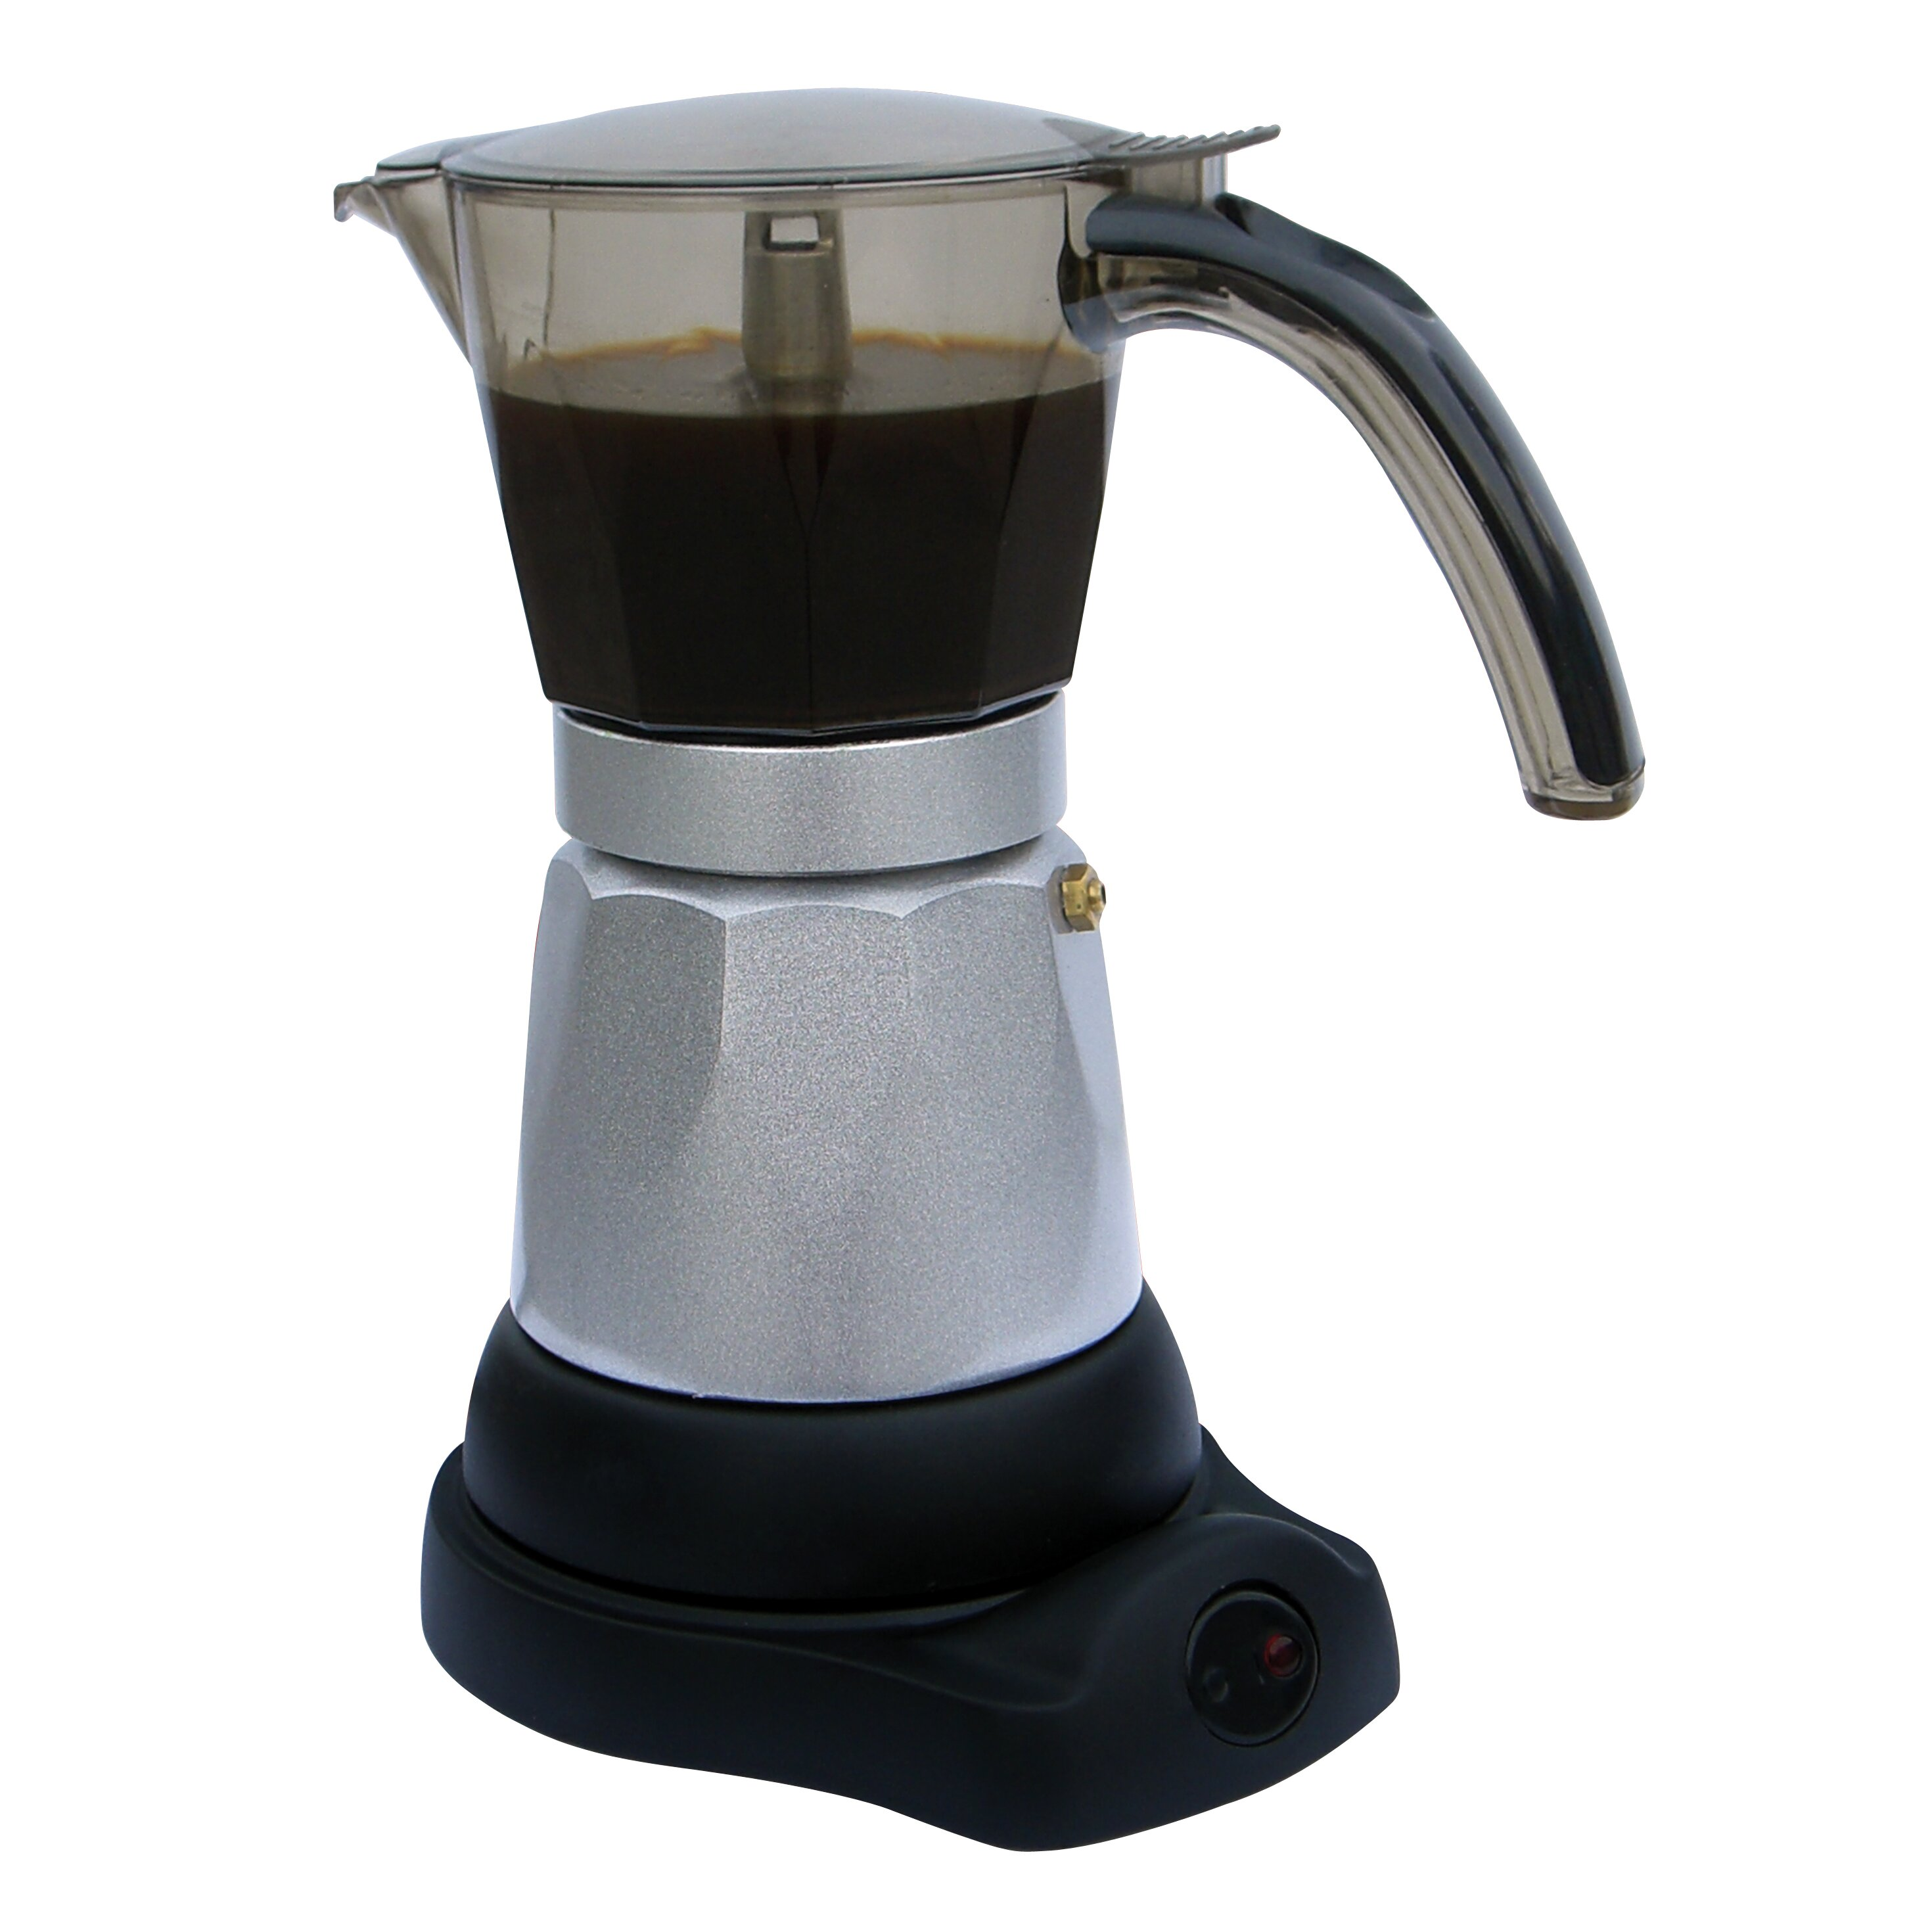 MBR Industries 6 Cup Electric Coffee Maker Wayfair